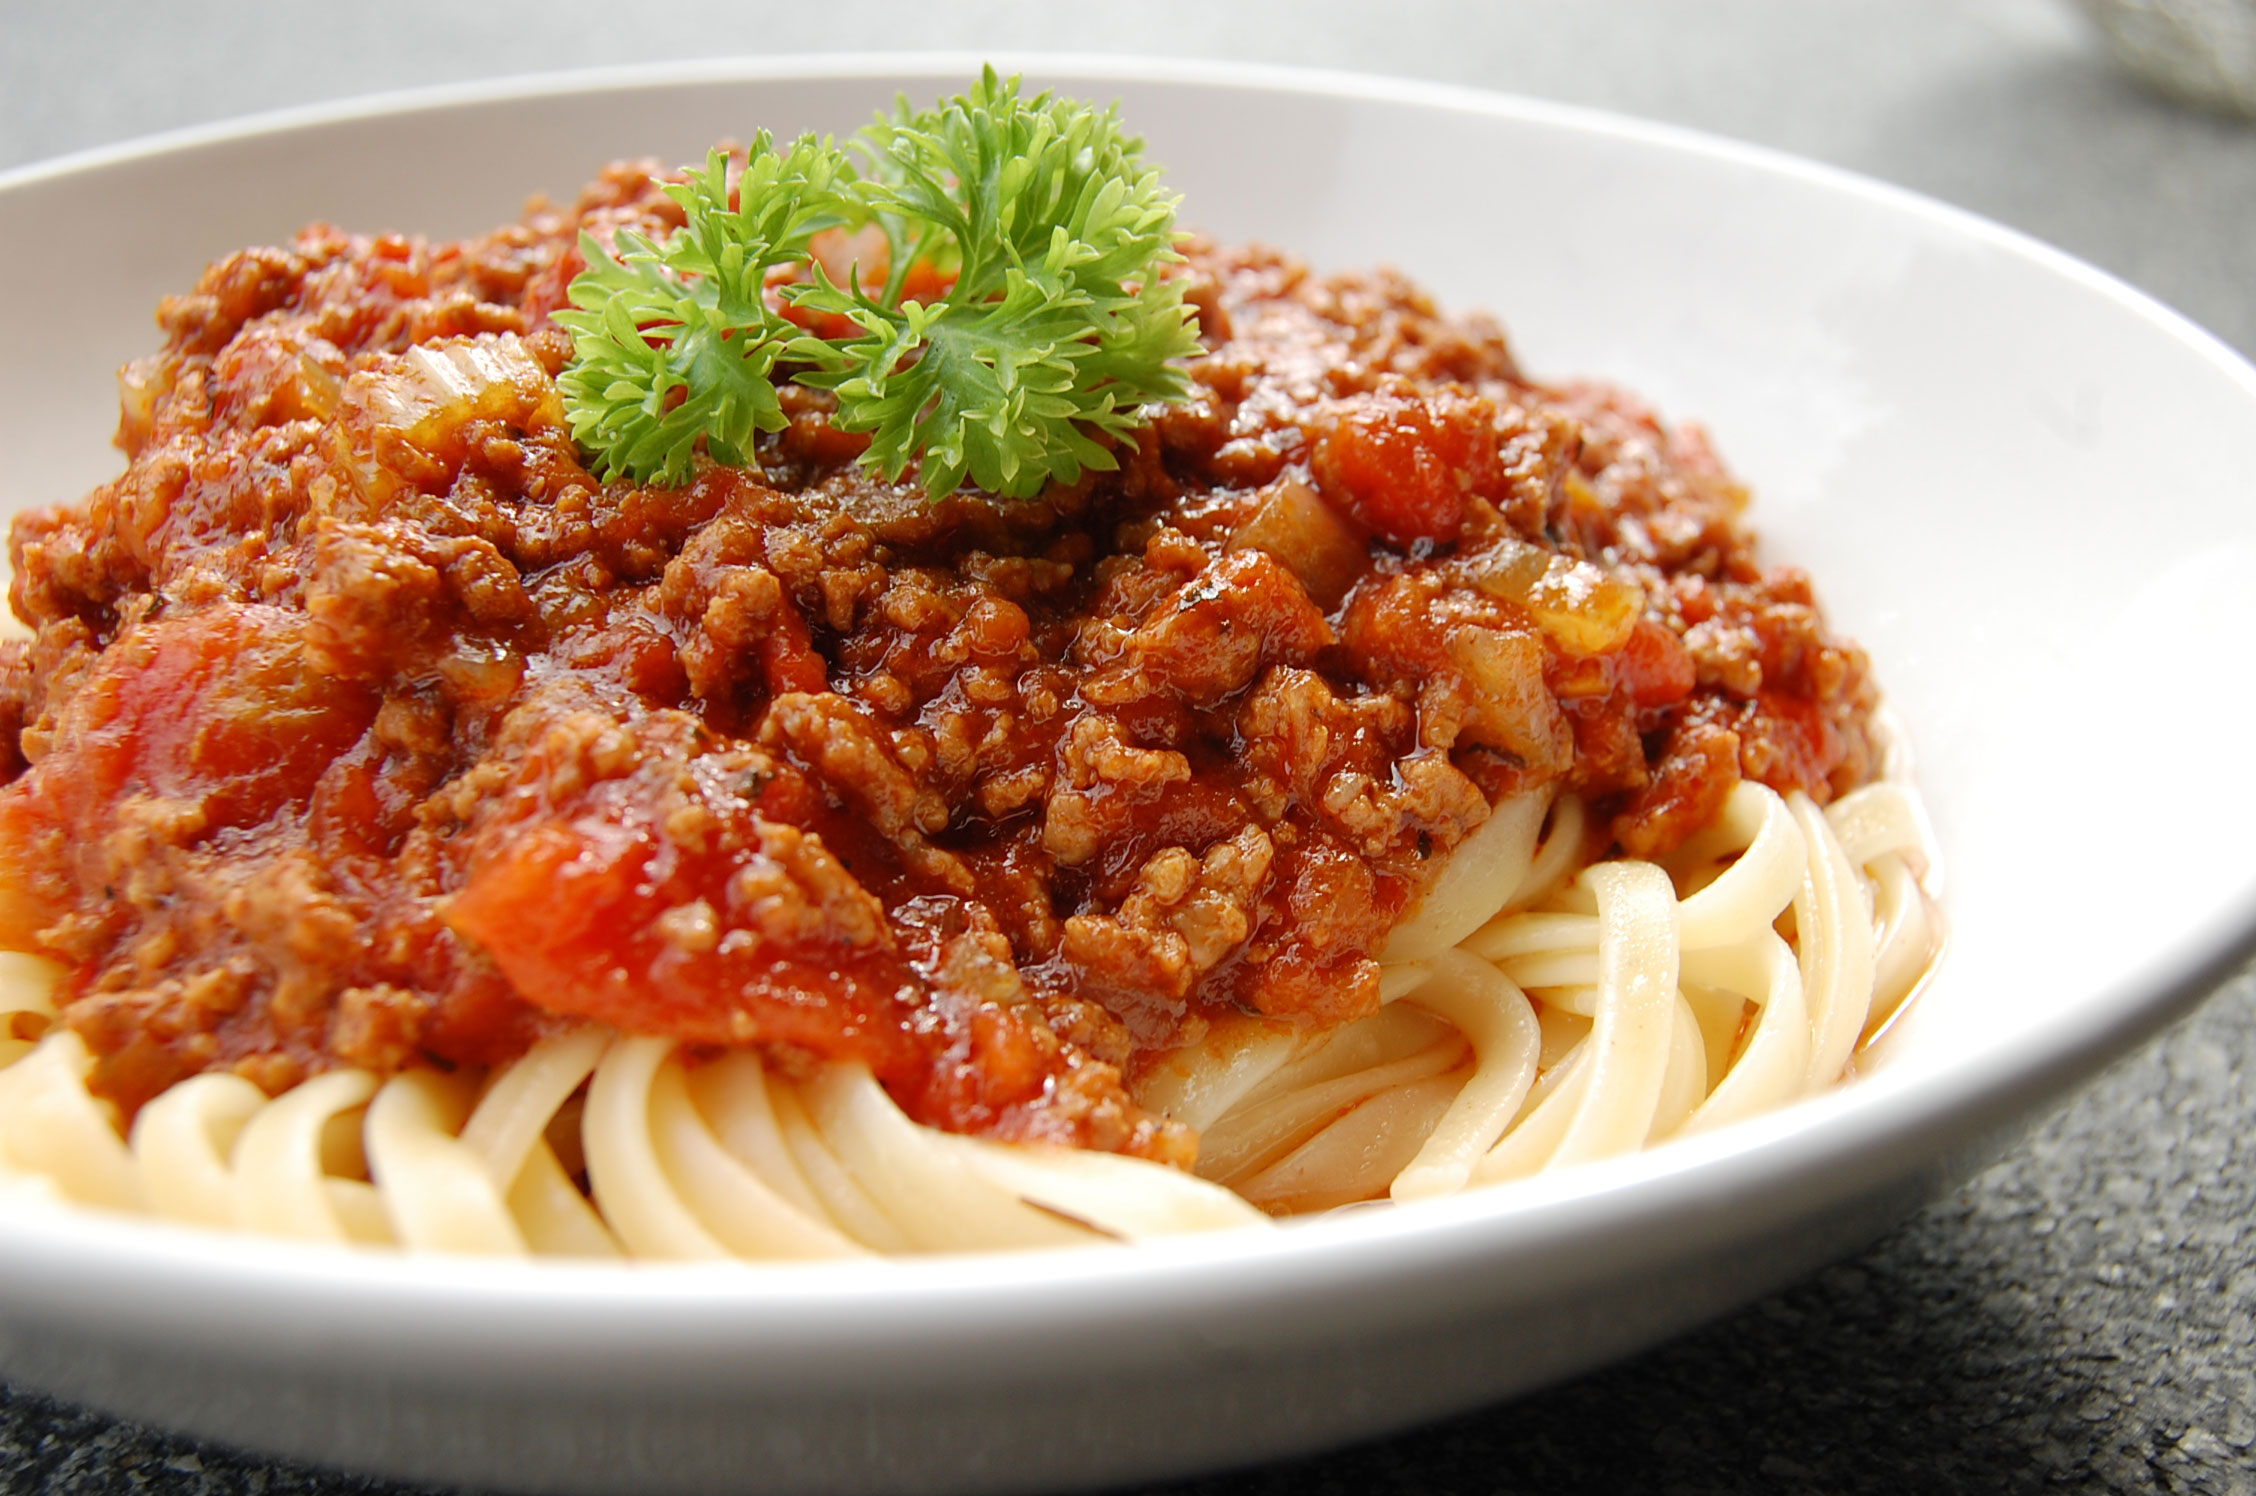 Sailing as an Inspiration for Cooking 'Bolognese'